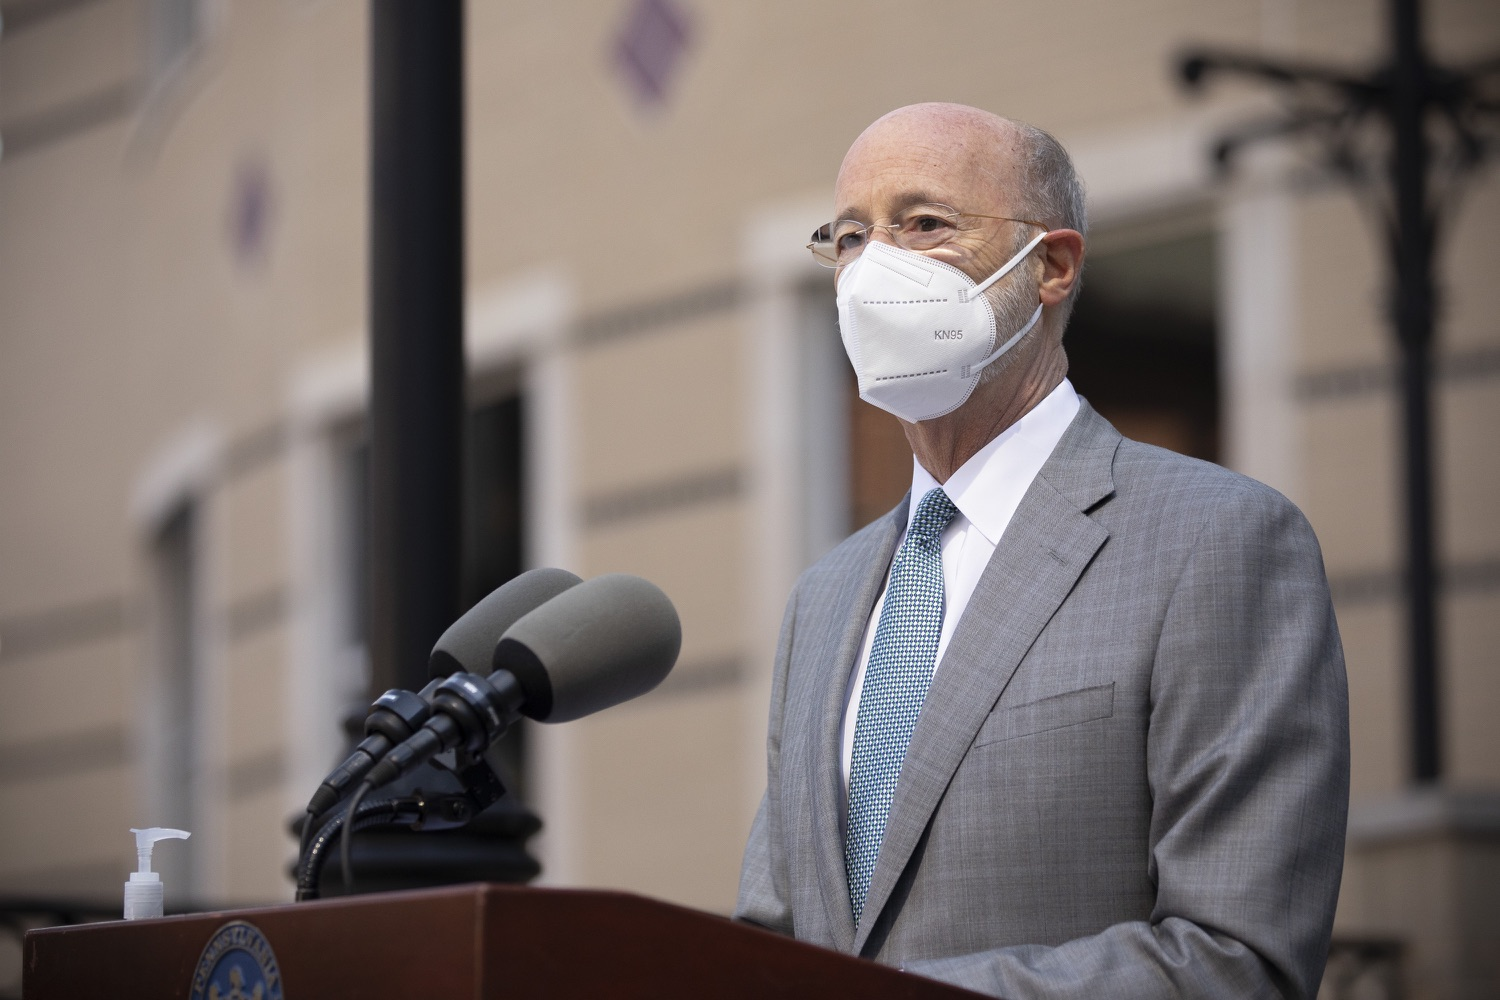 """<a href=""""https://filesource.wostreaming.net/commonwealthofpa/photo/18688_gov_vaccines_dz_010.jpg"""" target=""""_blank"""">⇣Download Photo<br></a>Pennsylvania Governor Tom Wolf speaking with the press.  As Pennsylvania continues its accelerated COVID-19 vaccination plan, Pennsylvanians who are not able to leave their homes must be reached, and various state agencies and community groups are helping. Governor Tom Wolf visited Reading to talk about how the state and its partners are using various means to reach people not able to leave home to be vaccinated against COVID-19.  APRIL 26, 2021 - READING, PA"""